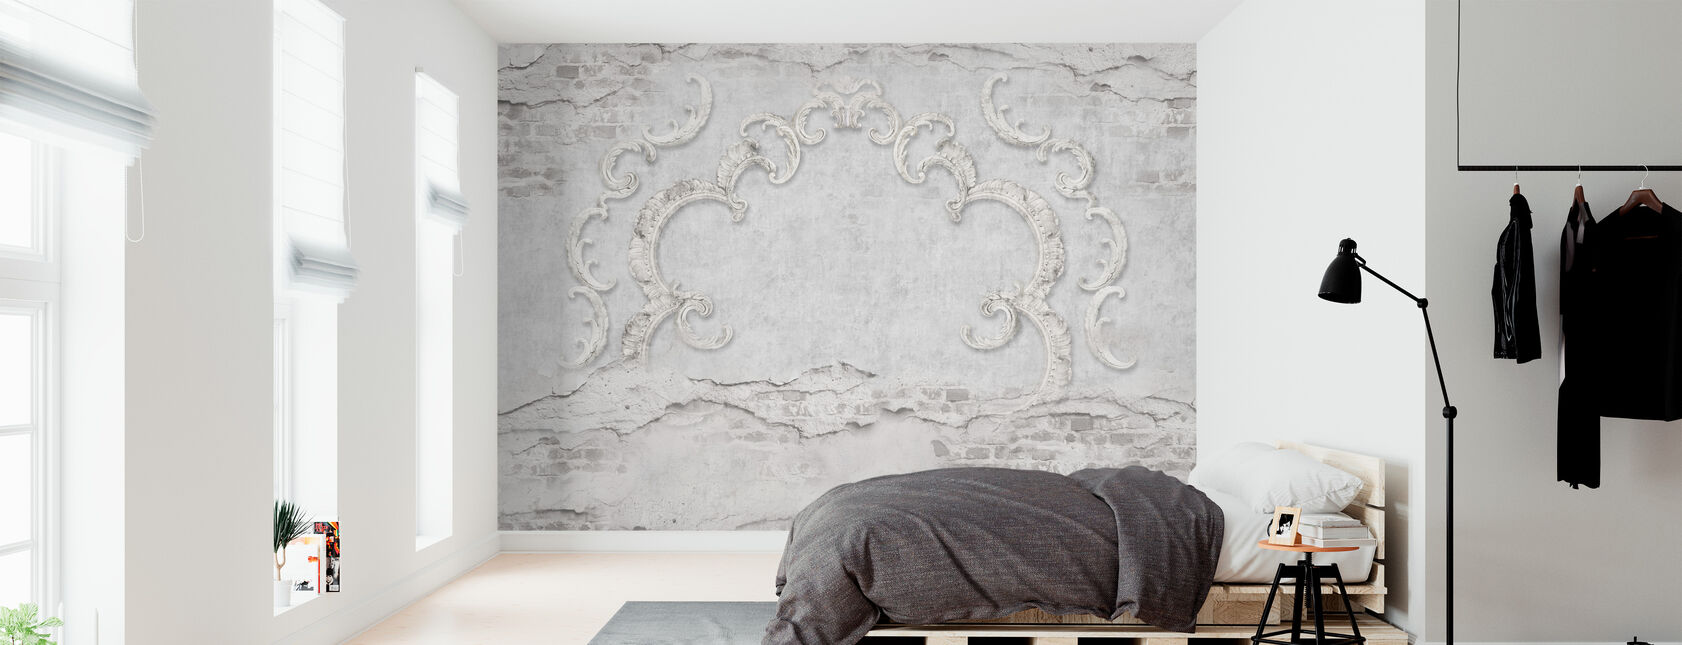 Cracked Brick wall with Stucco - Wallpaper - Bedroom